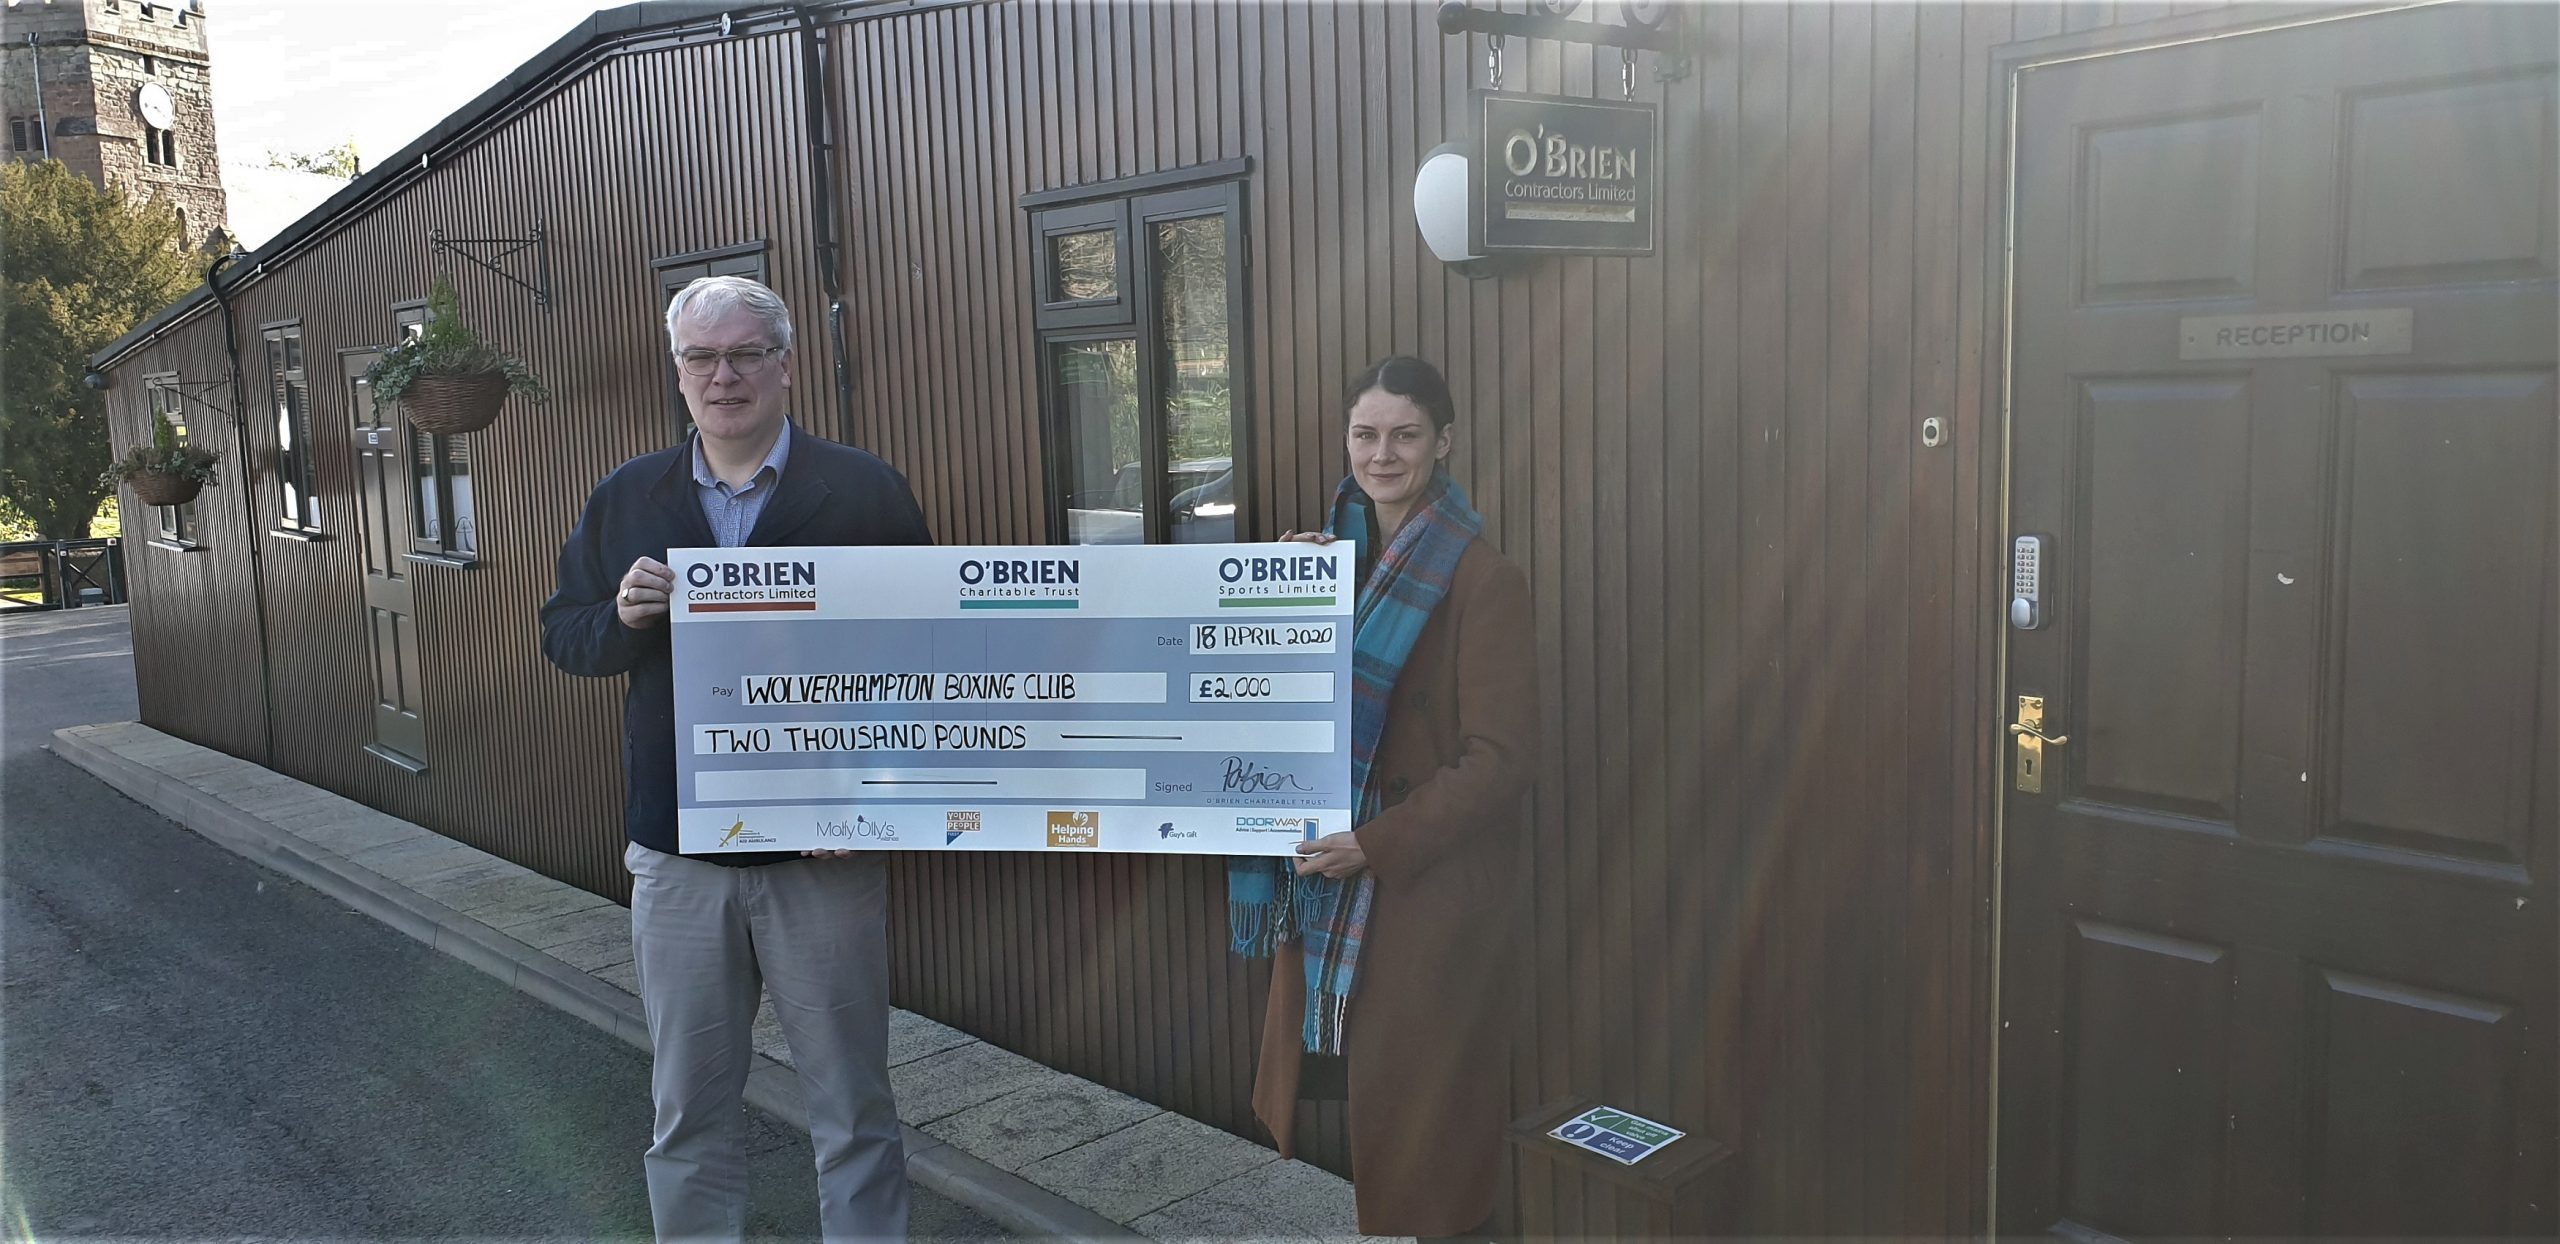 O'Brien Charitable Trust Donate £10,000 to Warwickshire + Northamptonshire Air Ambulance